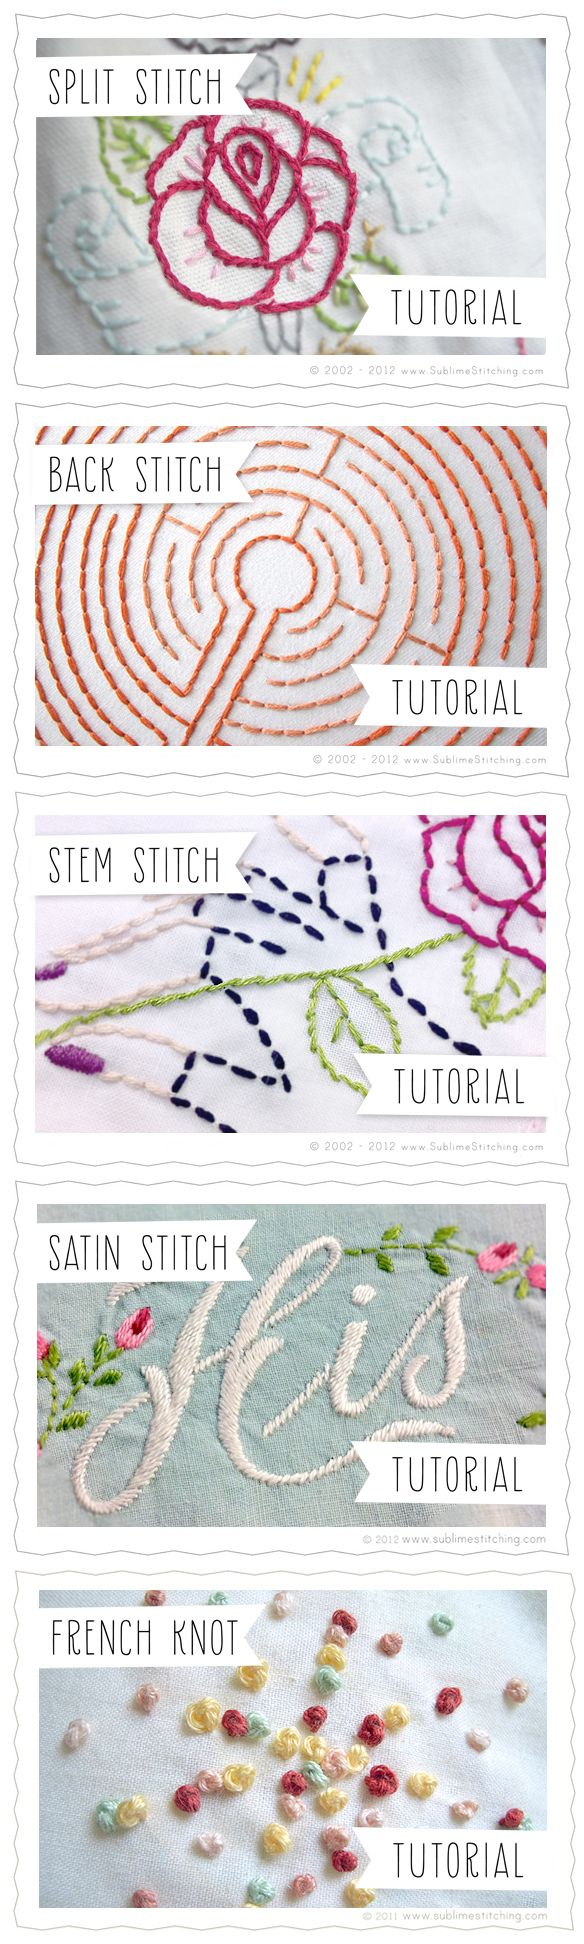 Embroidery stitches tutorials sublime stitching split